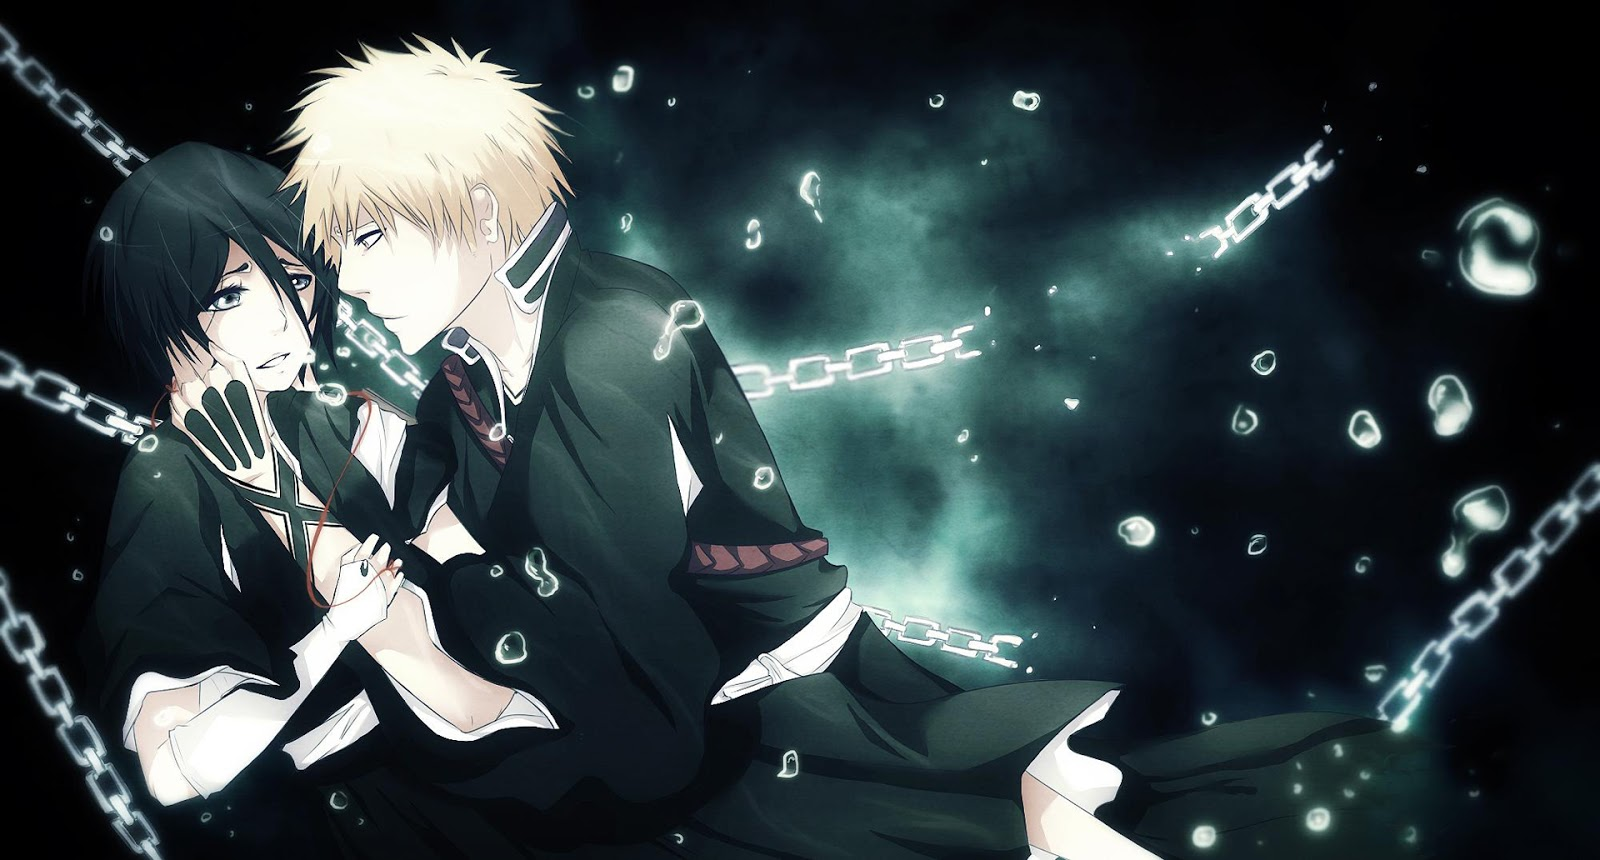 Kurosaki Ichigo Rukia Kuchiki Bleach Anime HD Wallpaper Desktop PC Background 1559